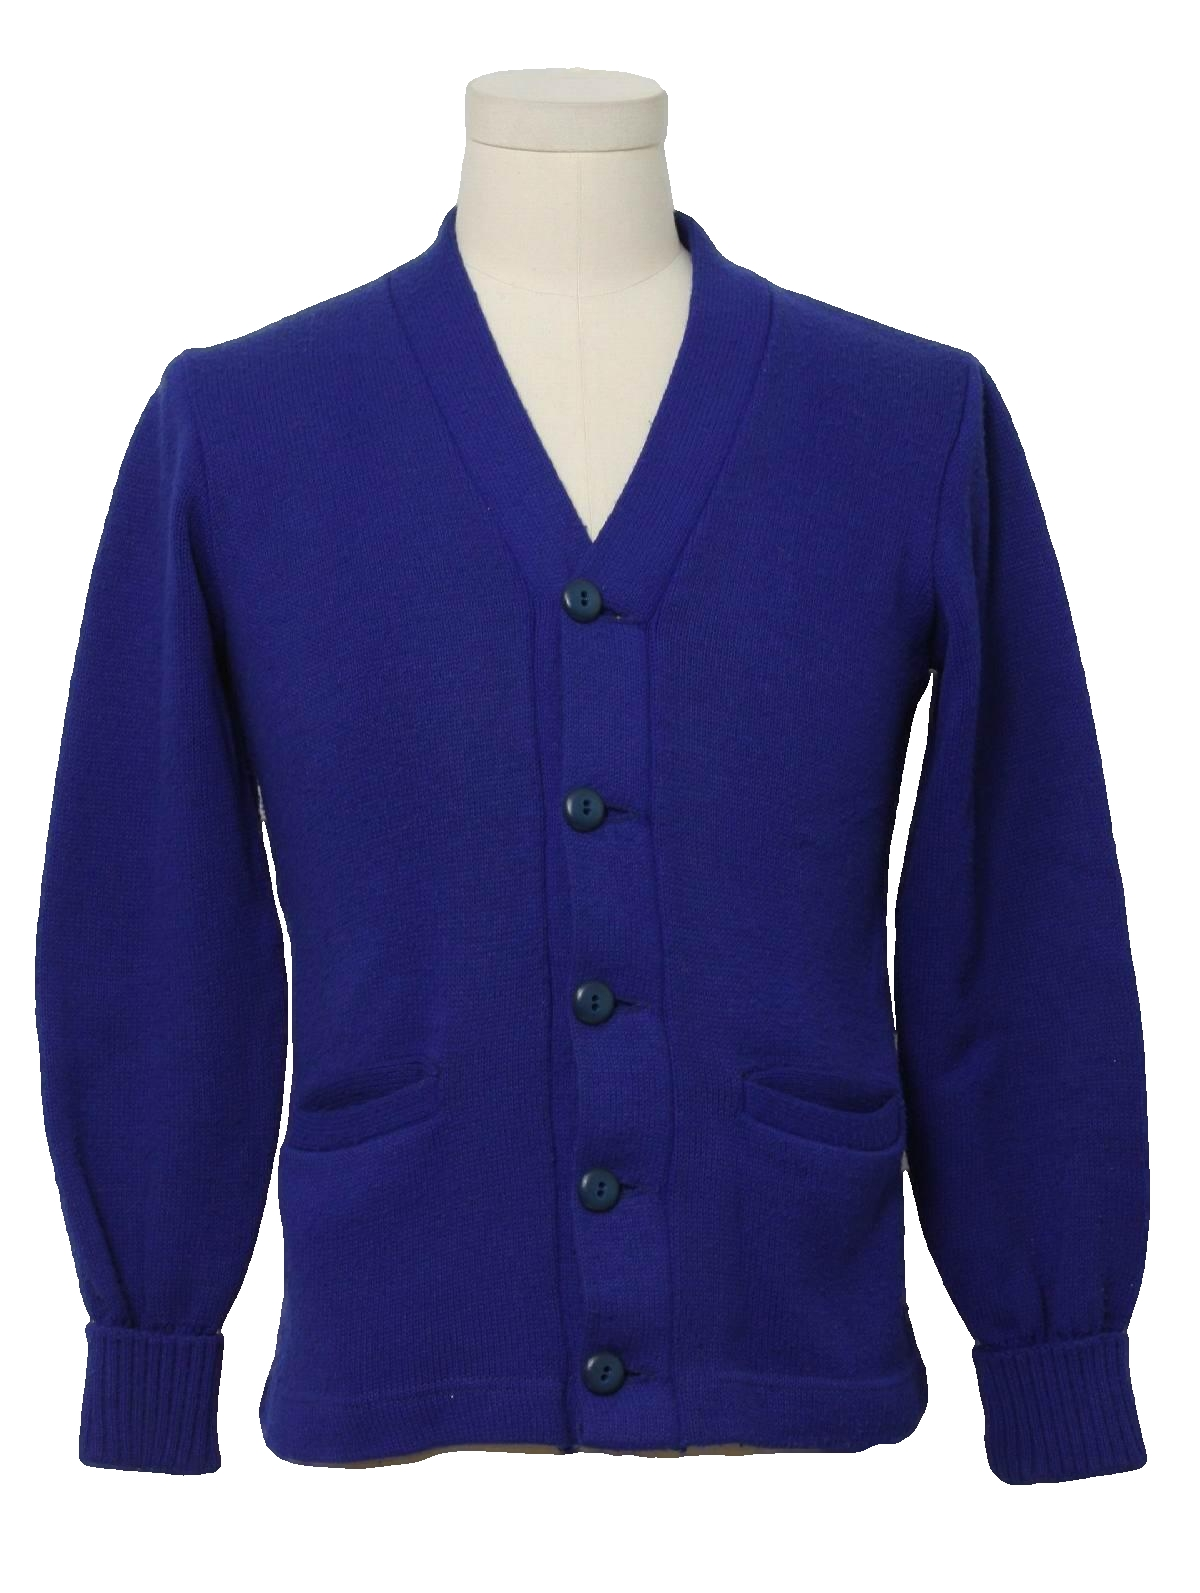 mens royal blue cardigan sweater baggage clothing